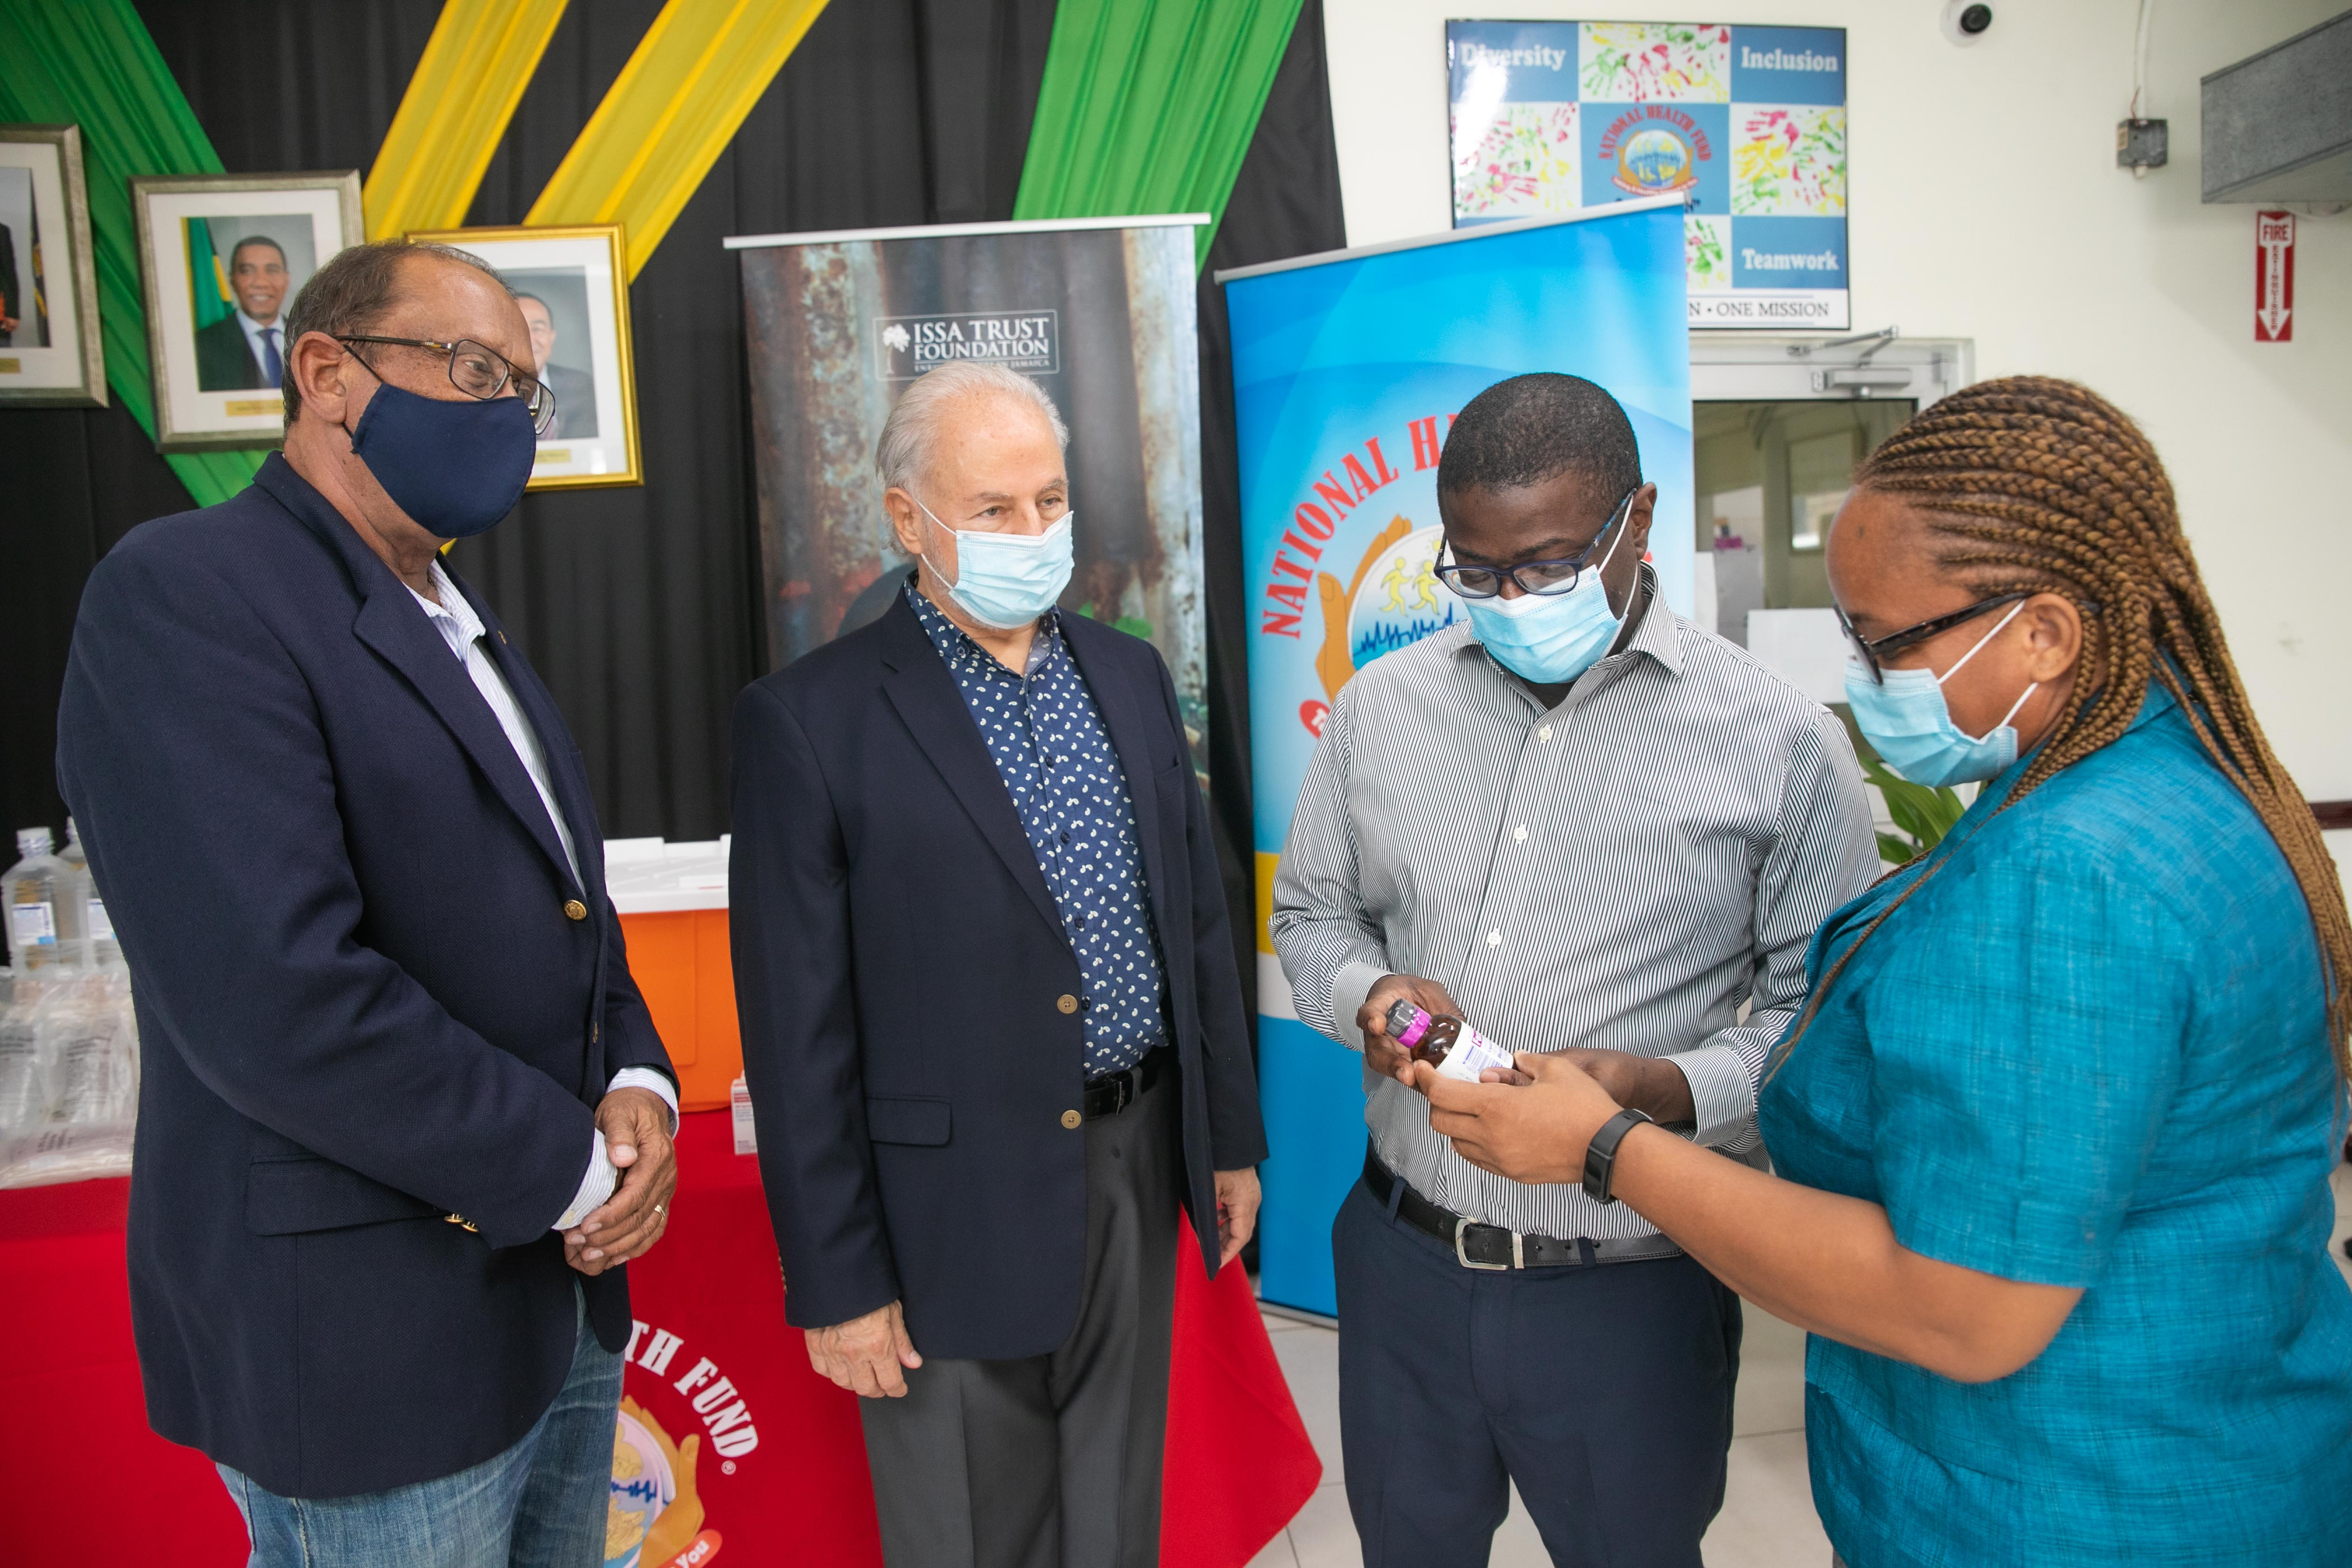 NHF RECEIVES PHARMACEUTICAL DRUGS VALUED AT US$900,000 FROM DIRECT RELIEF